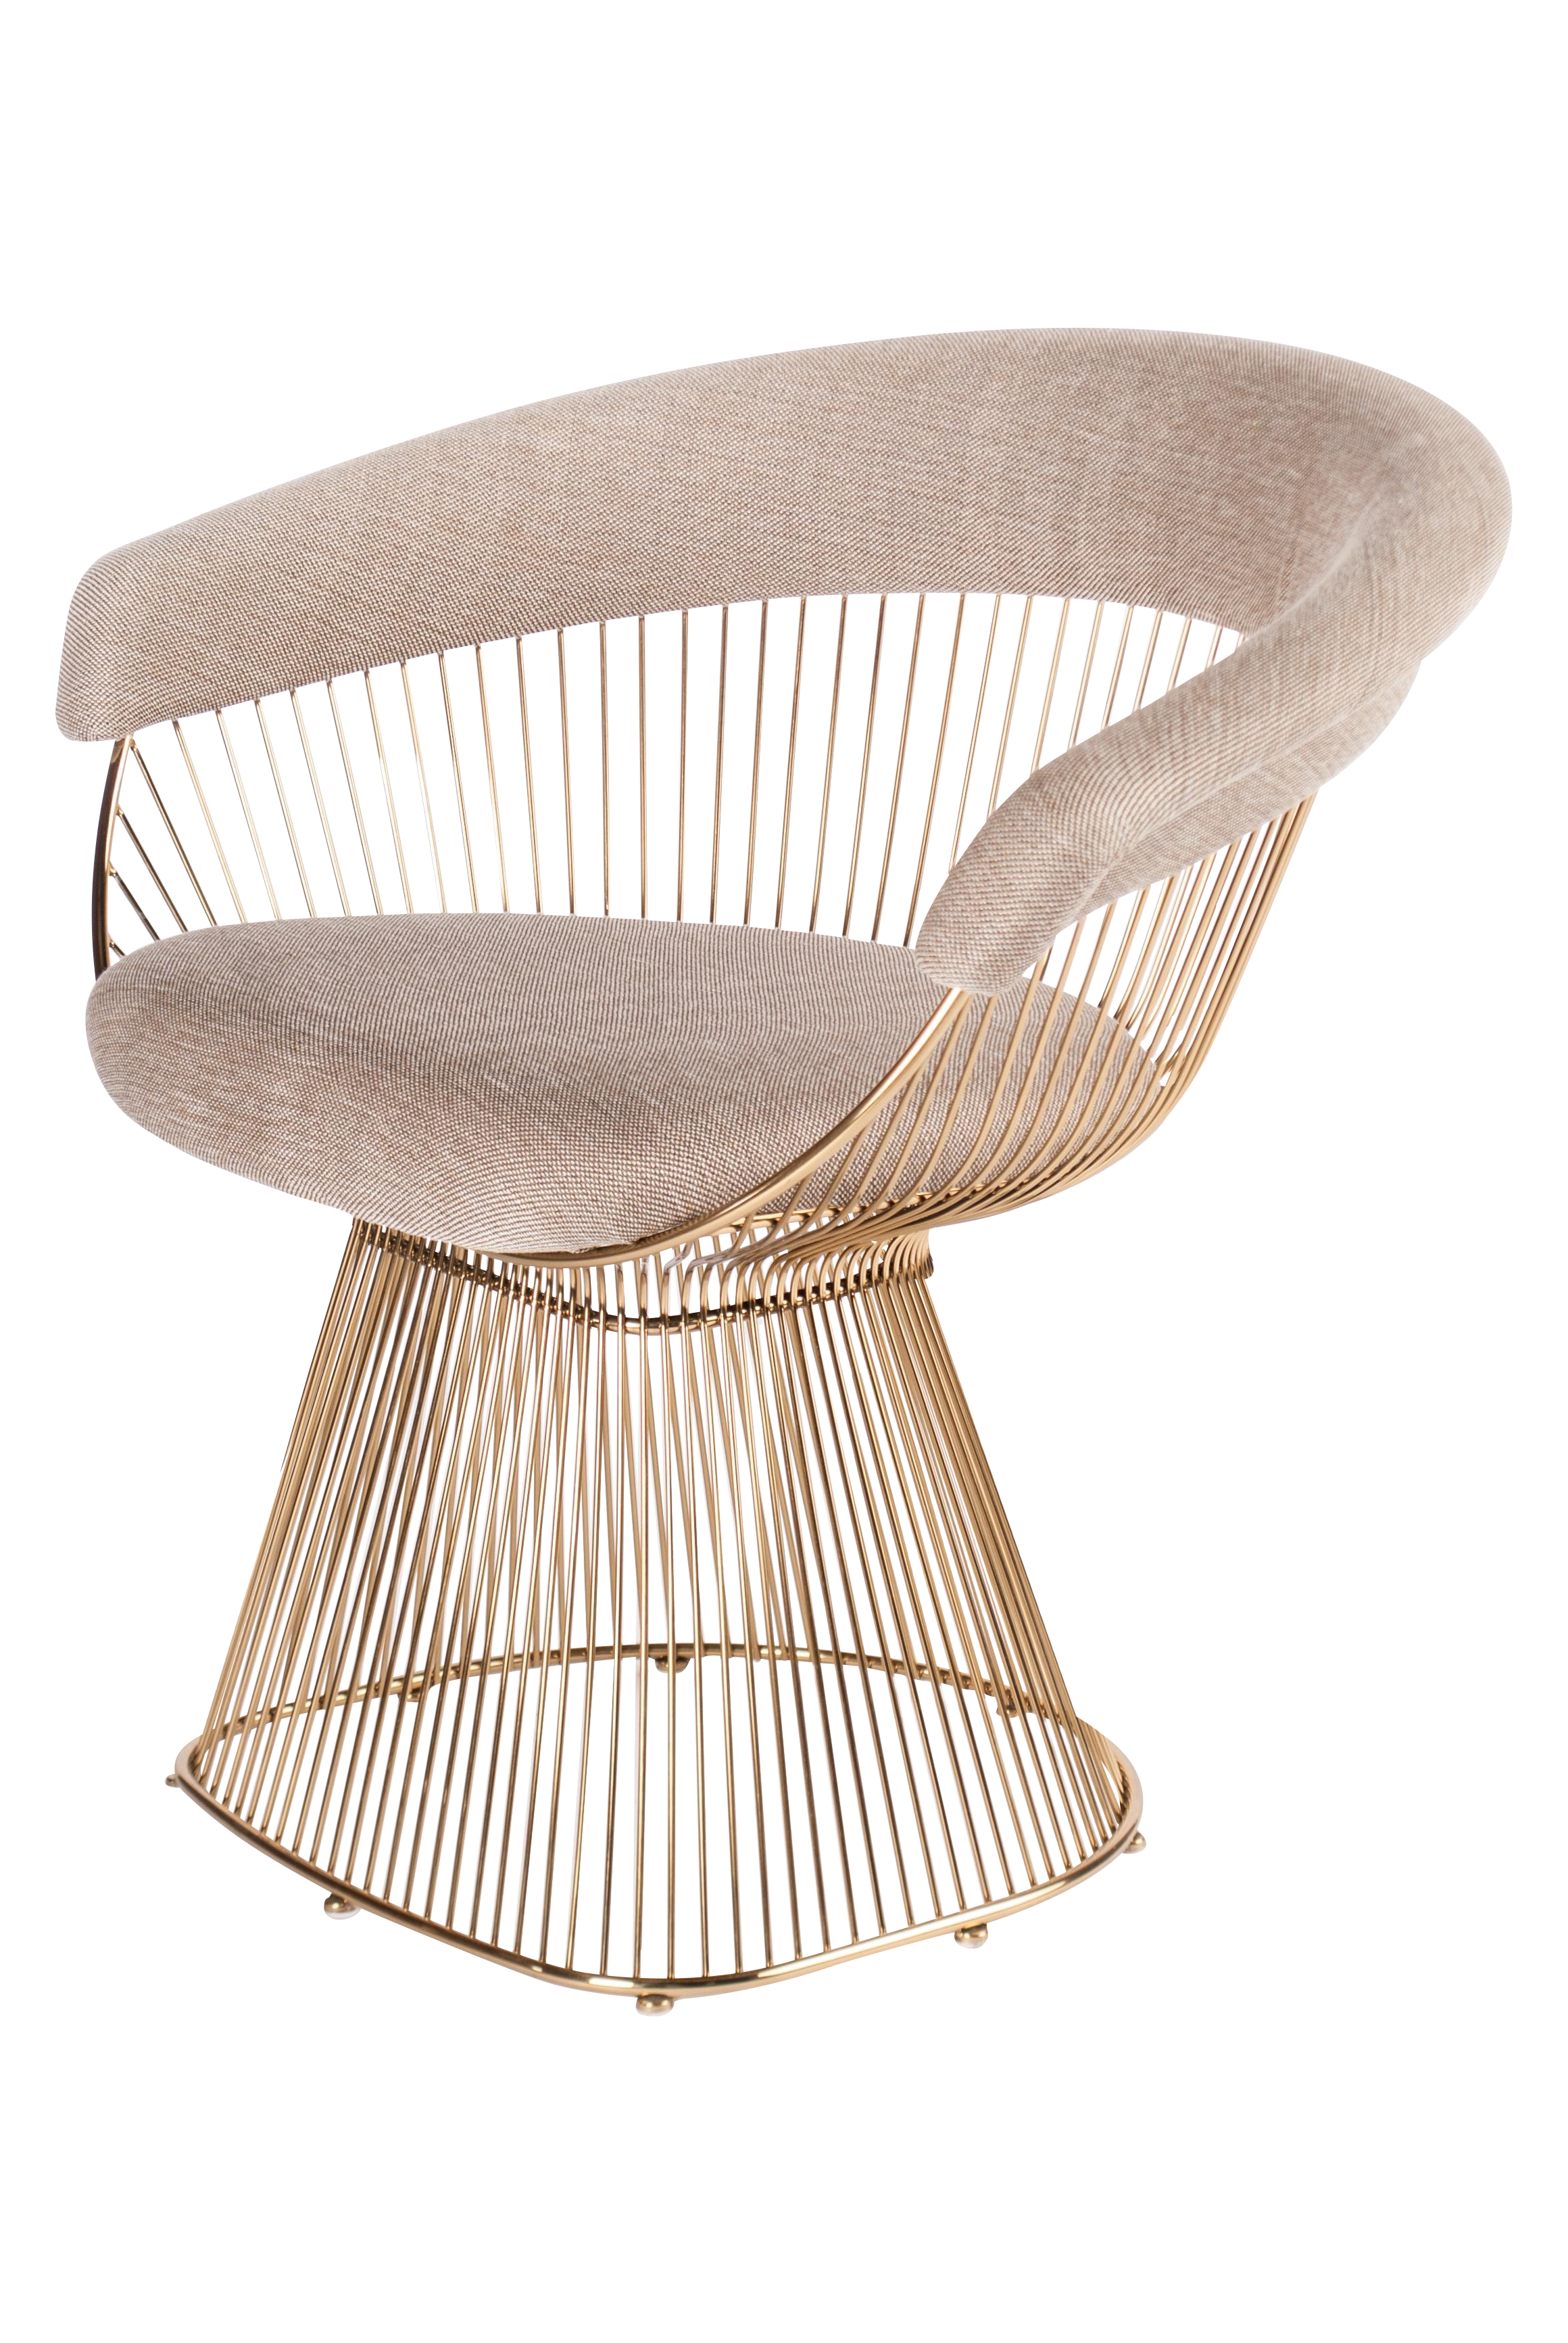 Platner Inspired Gold Accent Chairs Pair Chairish : 962b9b5e 286f 44bf b3a7 6a5122e458f0aspectfitampwidth640ampheight640 from www.chairish.com size 640 x 640 jpeg 36kB